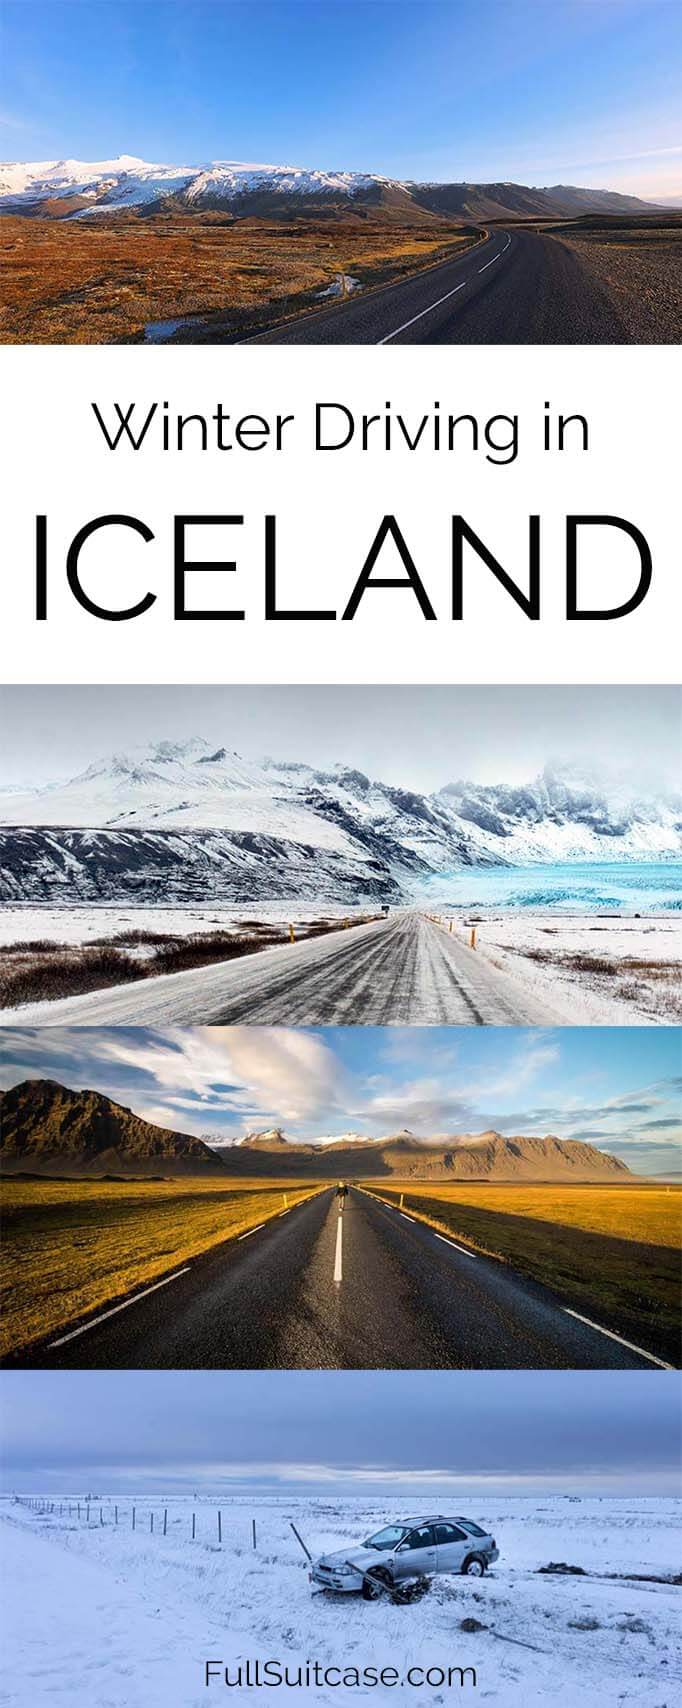 Everything you may want to know about winter driving in Iceland